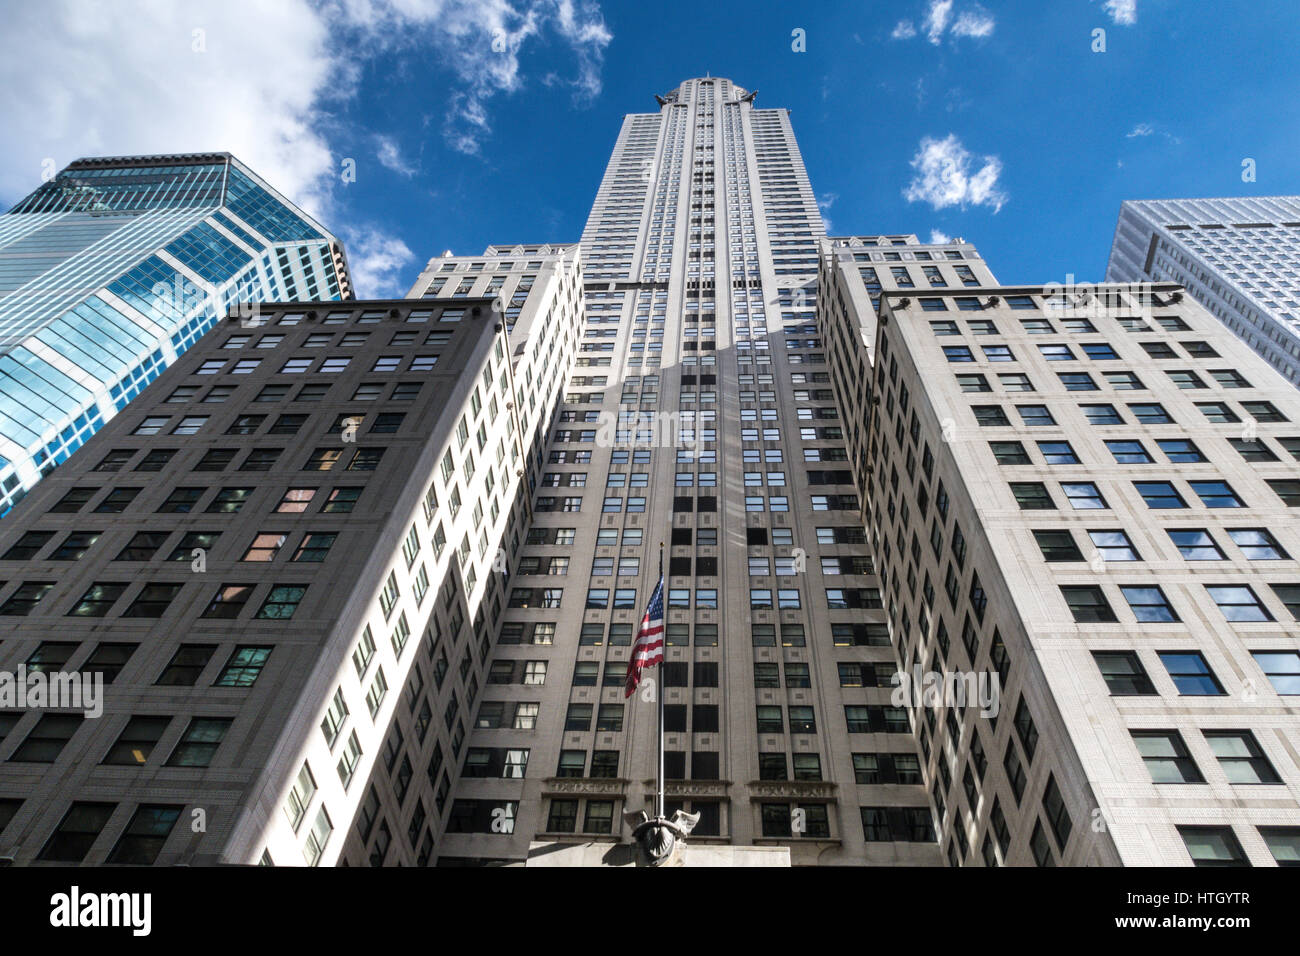 Looking up at the Iconic Chrysler Building, Midtown Manhattan, NYC, USA - Stock Image